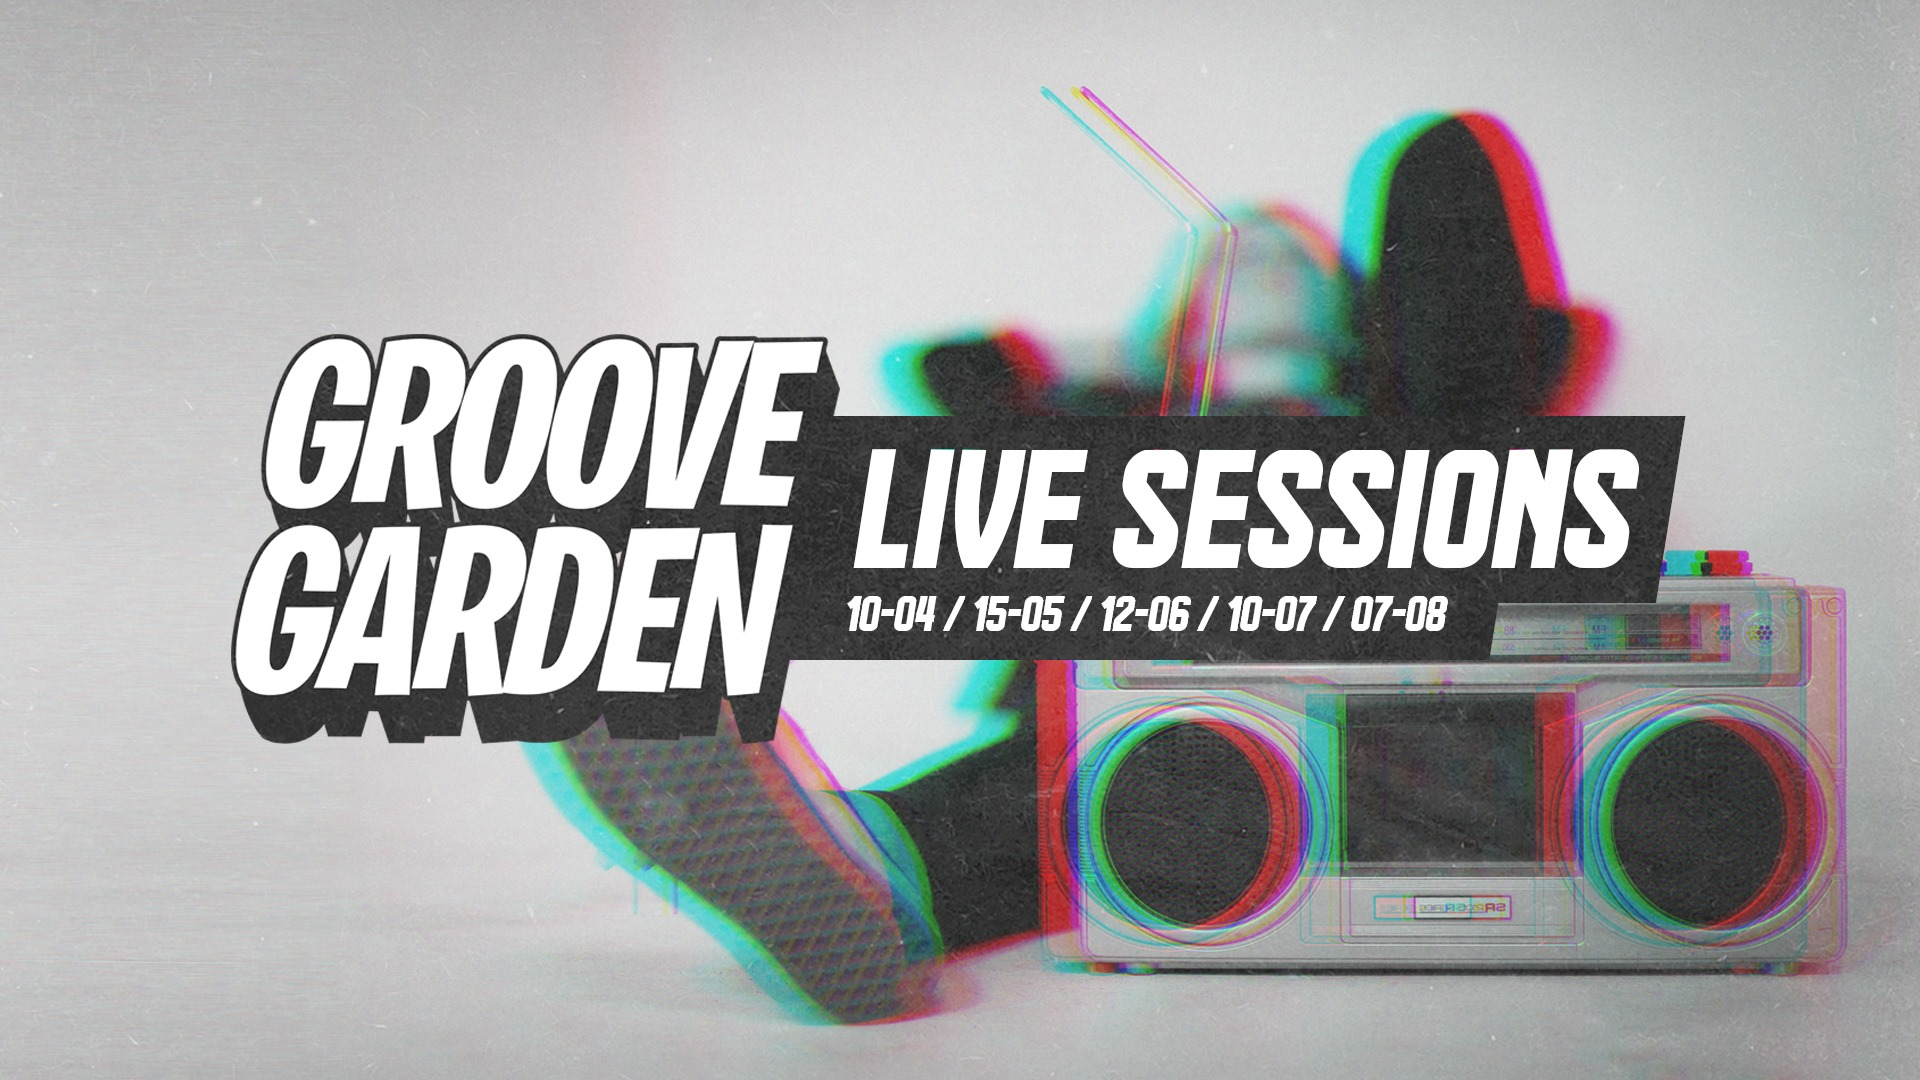 Groove Garden Livesessions